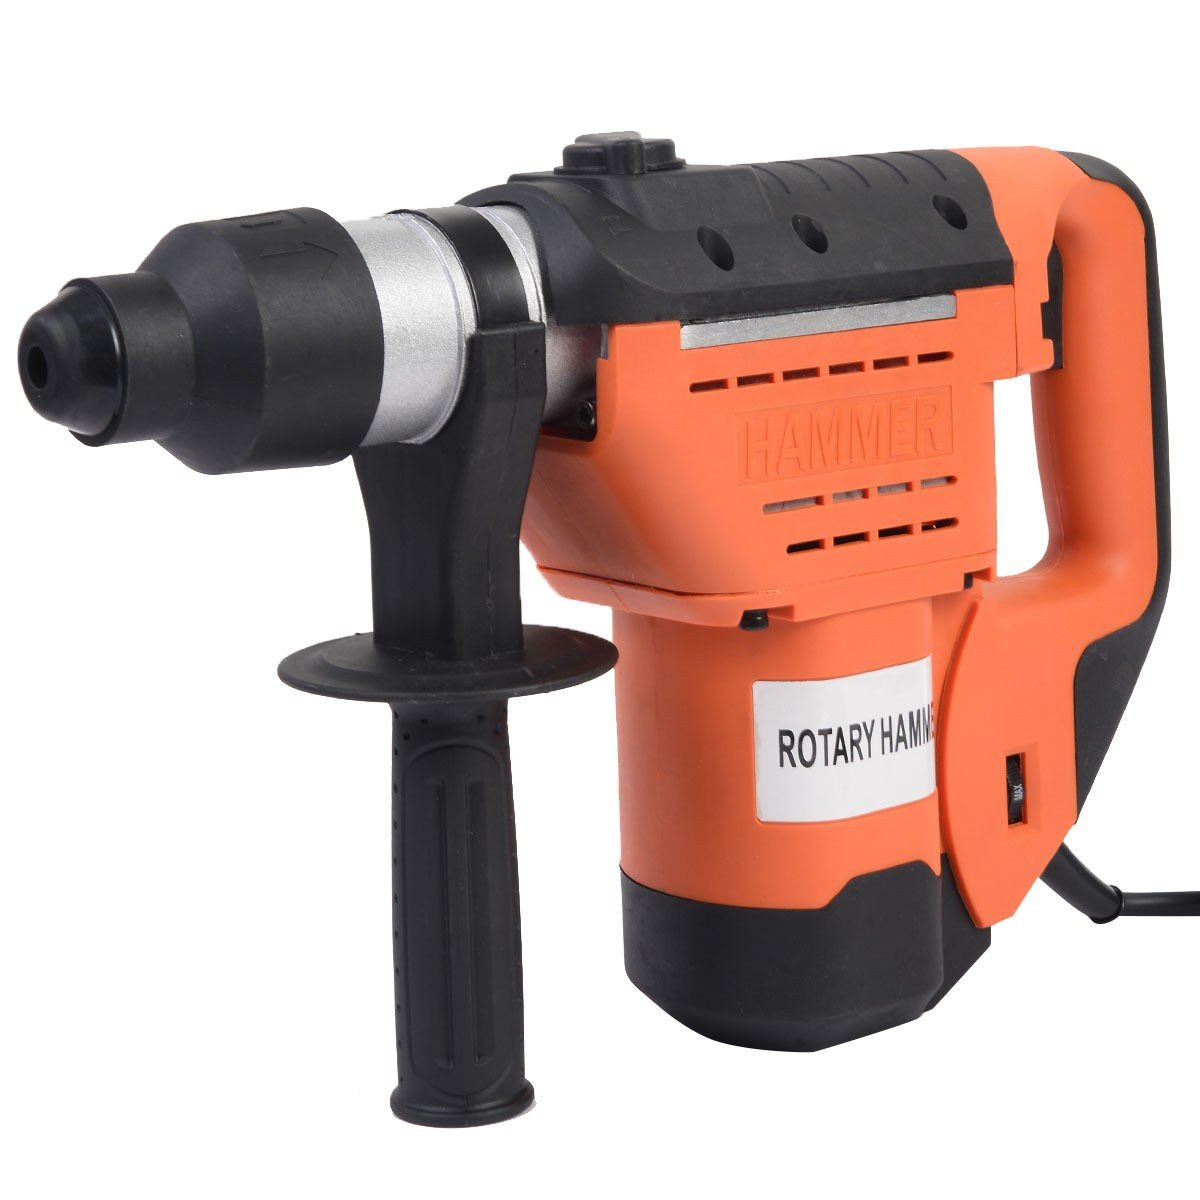 MD Group 1-1/2'' SDS Electric Rotary Drill Plus Demolition Bits Variable Speed New